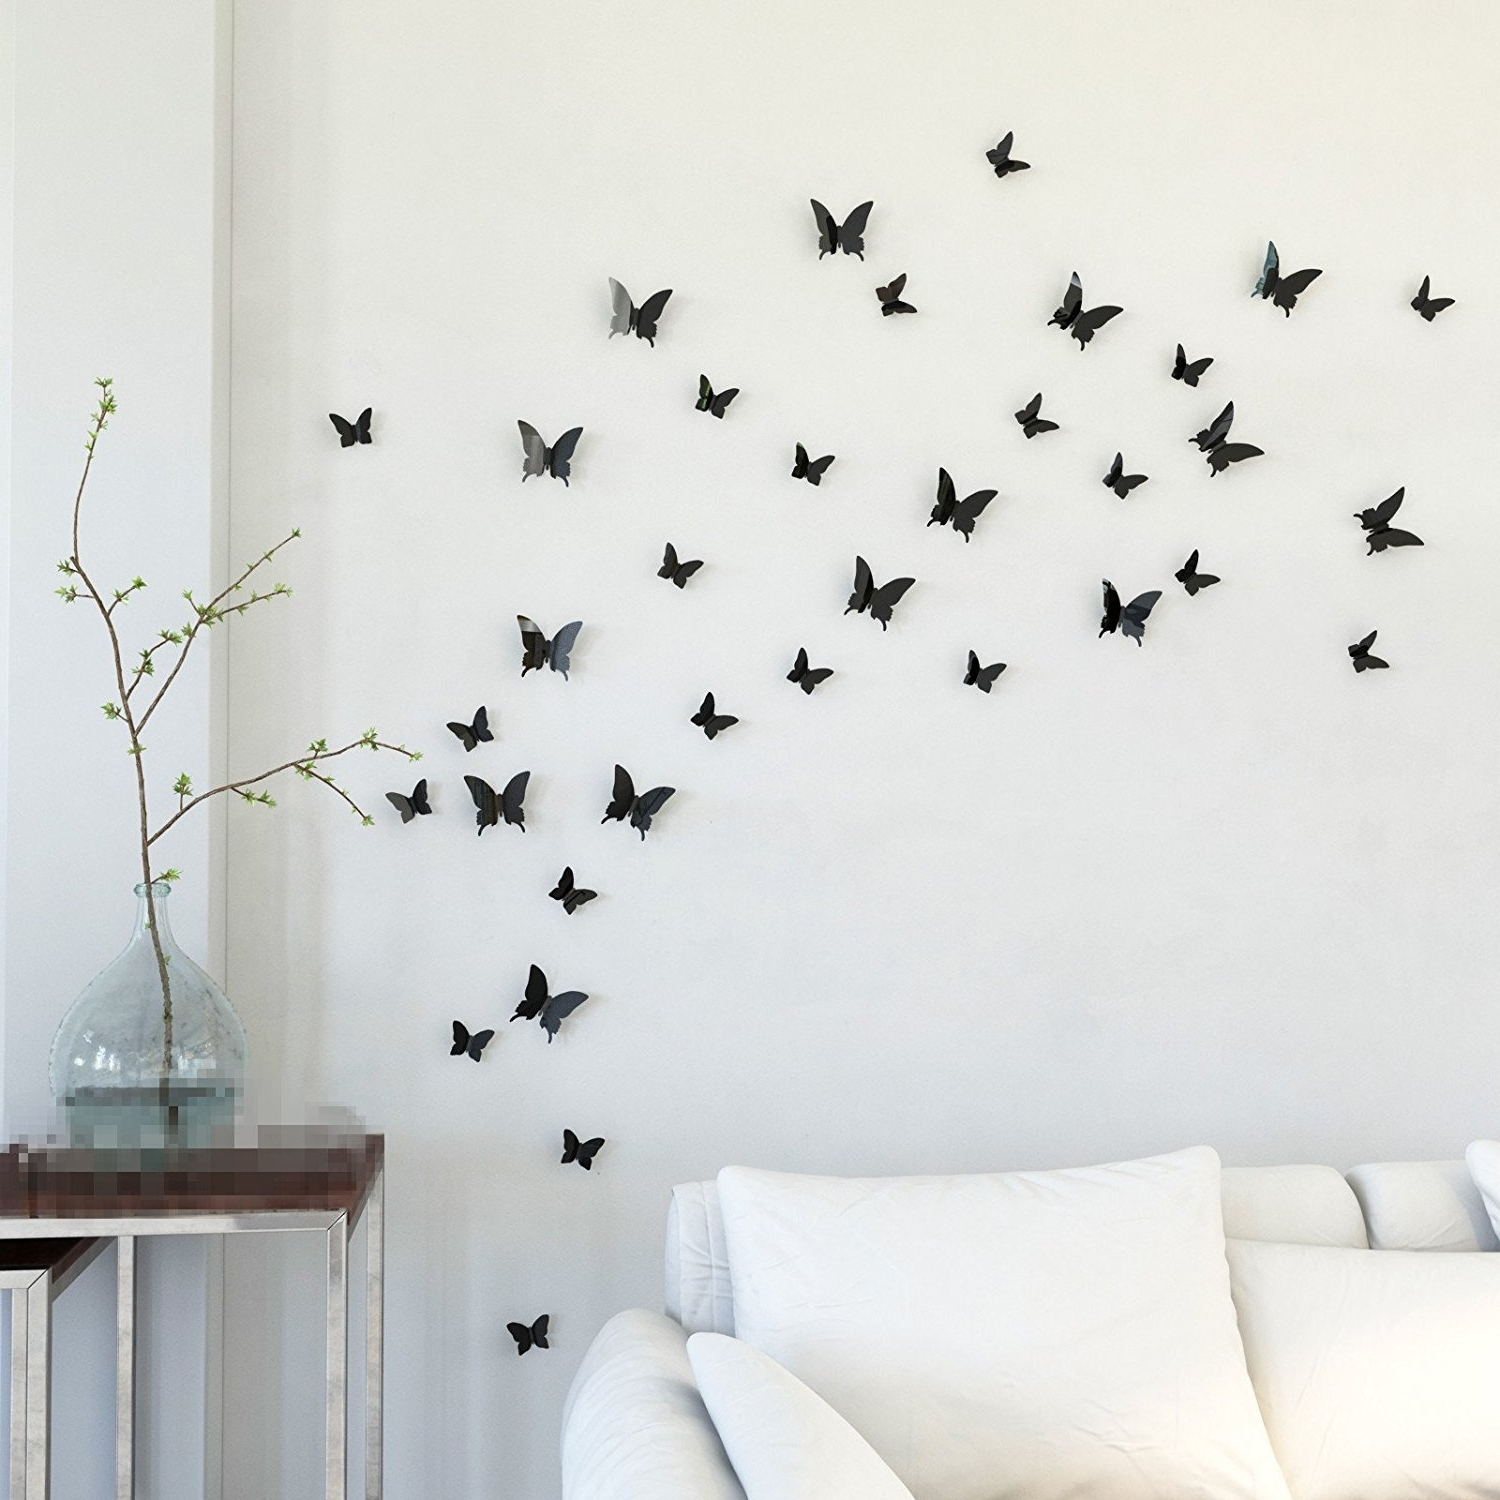 Newest Smart Butterfly Wall Decor D Butterfly Wall Decor Stickers To Within 3d Removable Butterfly Wall Art Stickers (View 5 of 15)